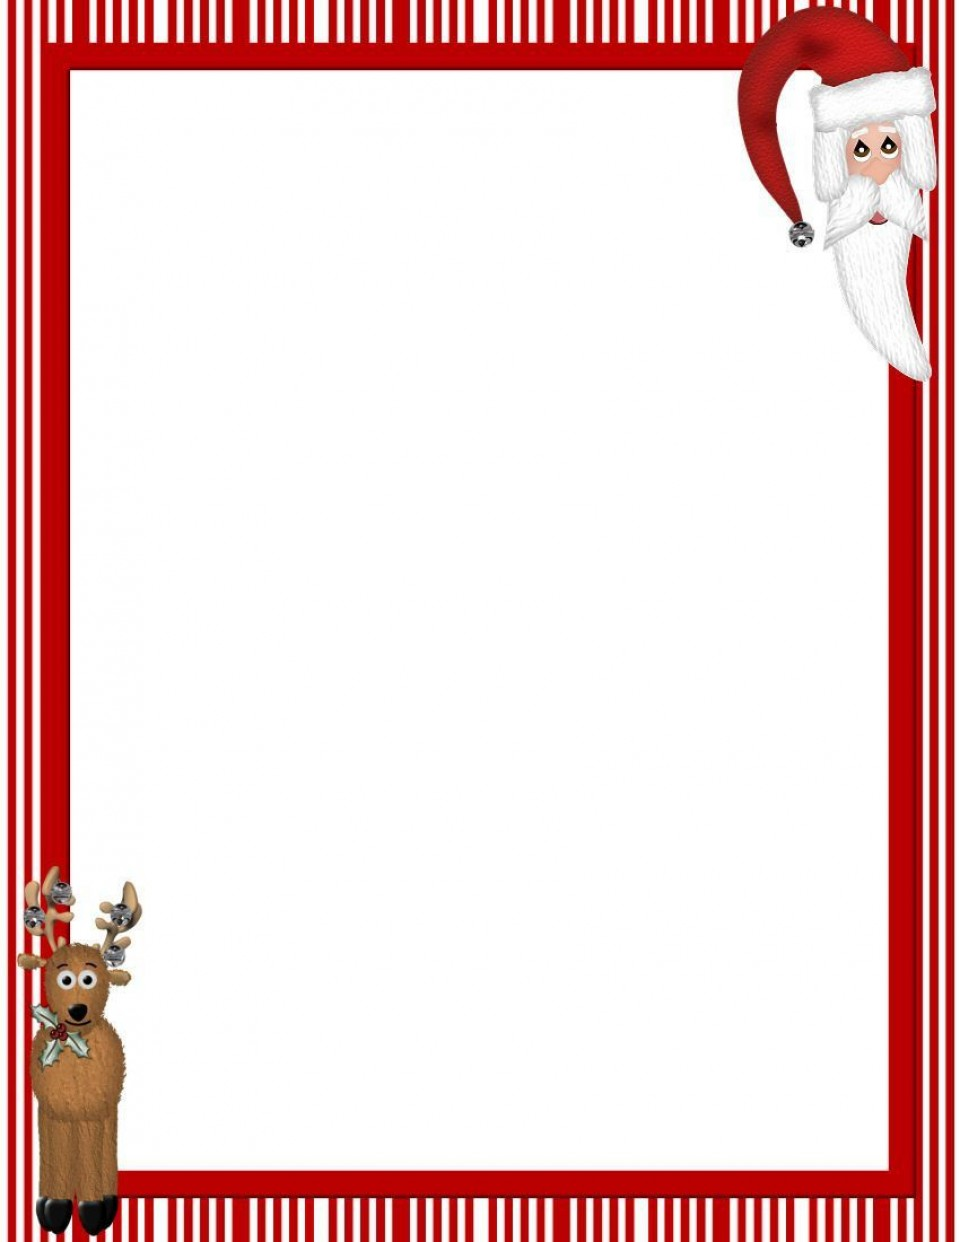 008 Imposing Free Holiday Stationery Template For Word High Definition 960